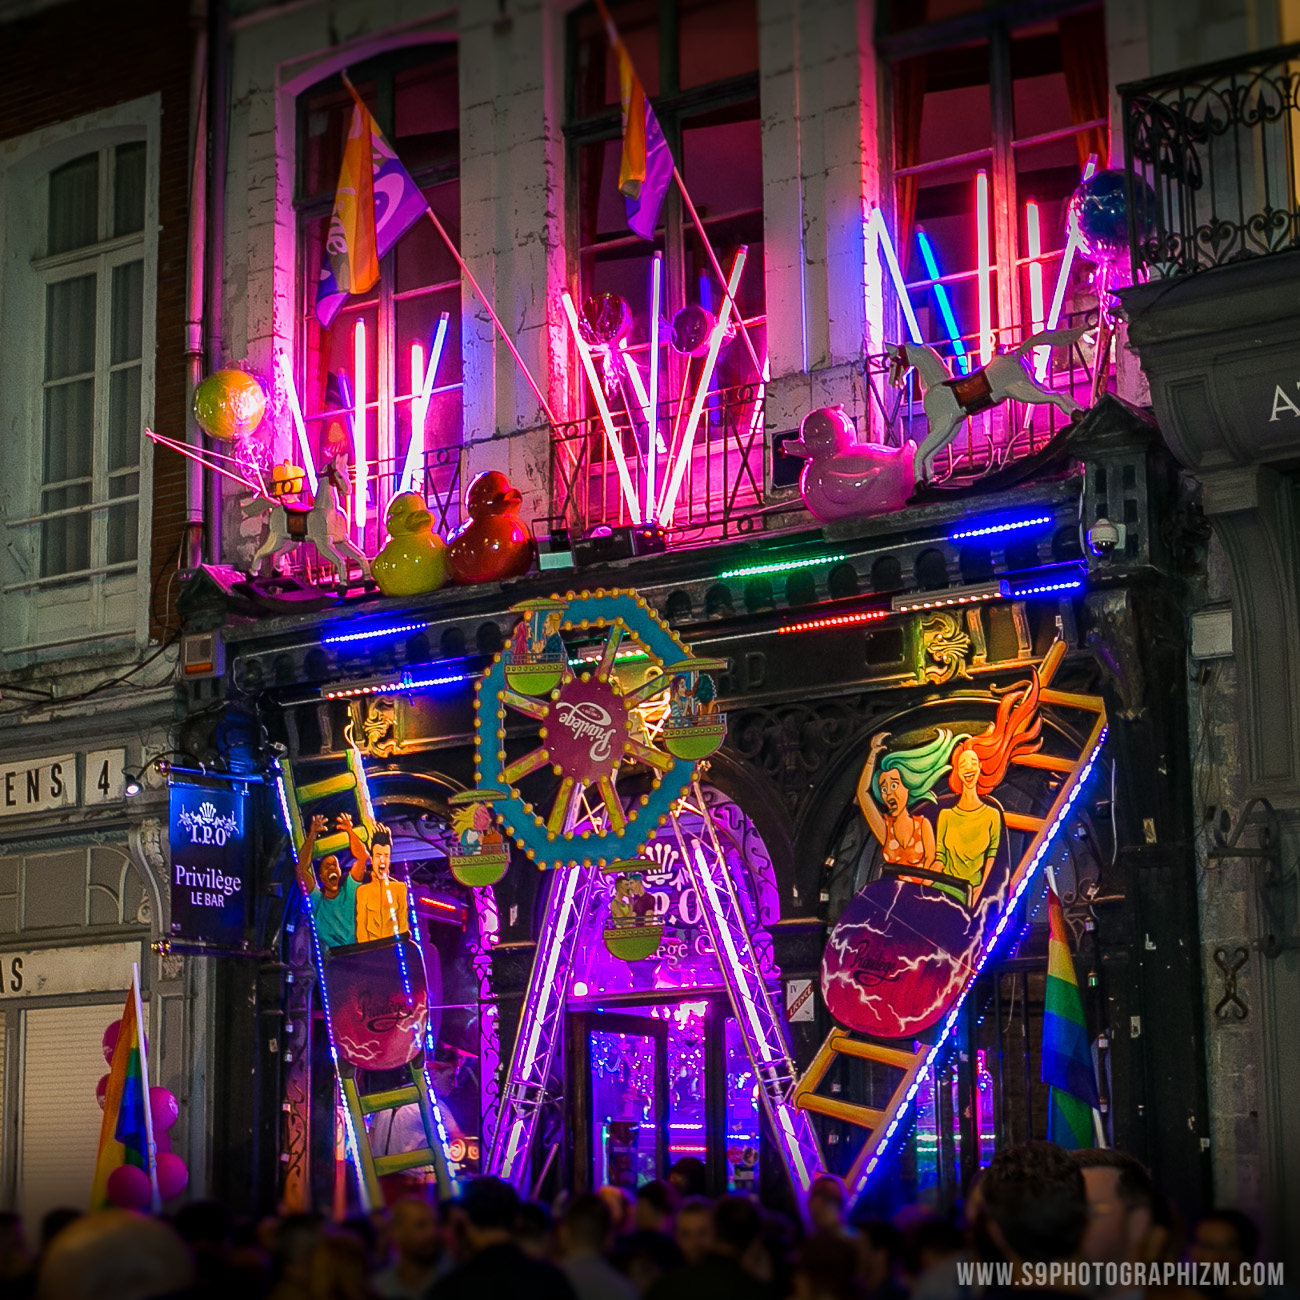 decoration-privilege-gaypride-2018-facade-gaypride lille 2018-privilege bar lille-gay lesbien-décoration-marche des fiertés lille-fiertés-couple mixte-